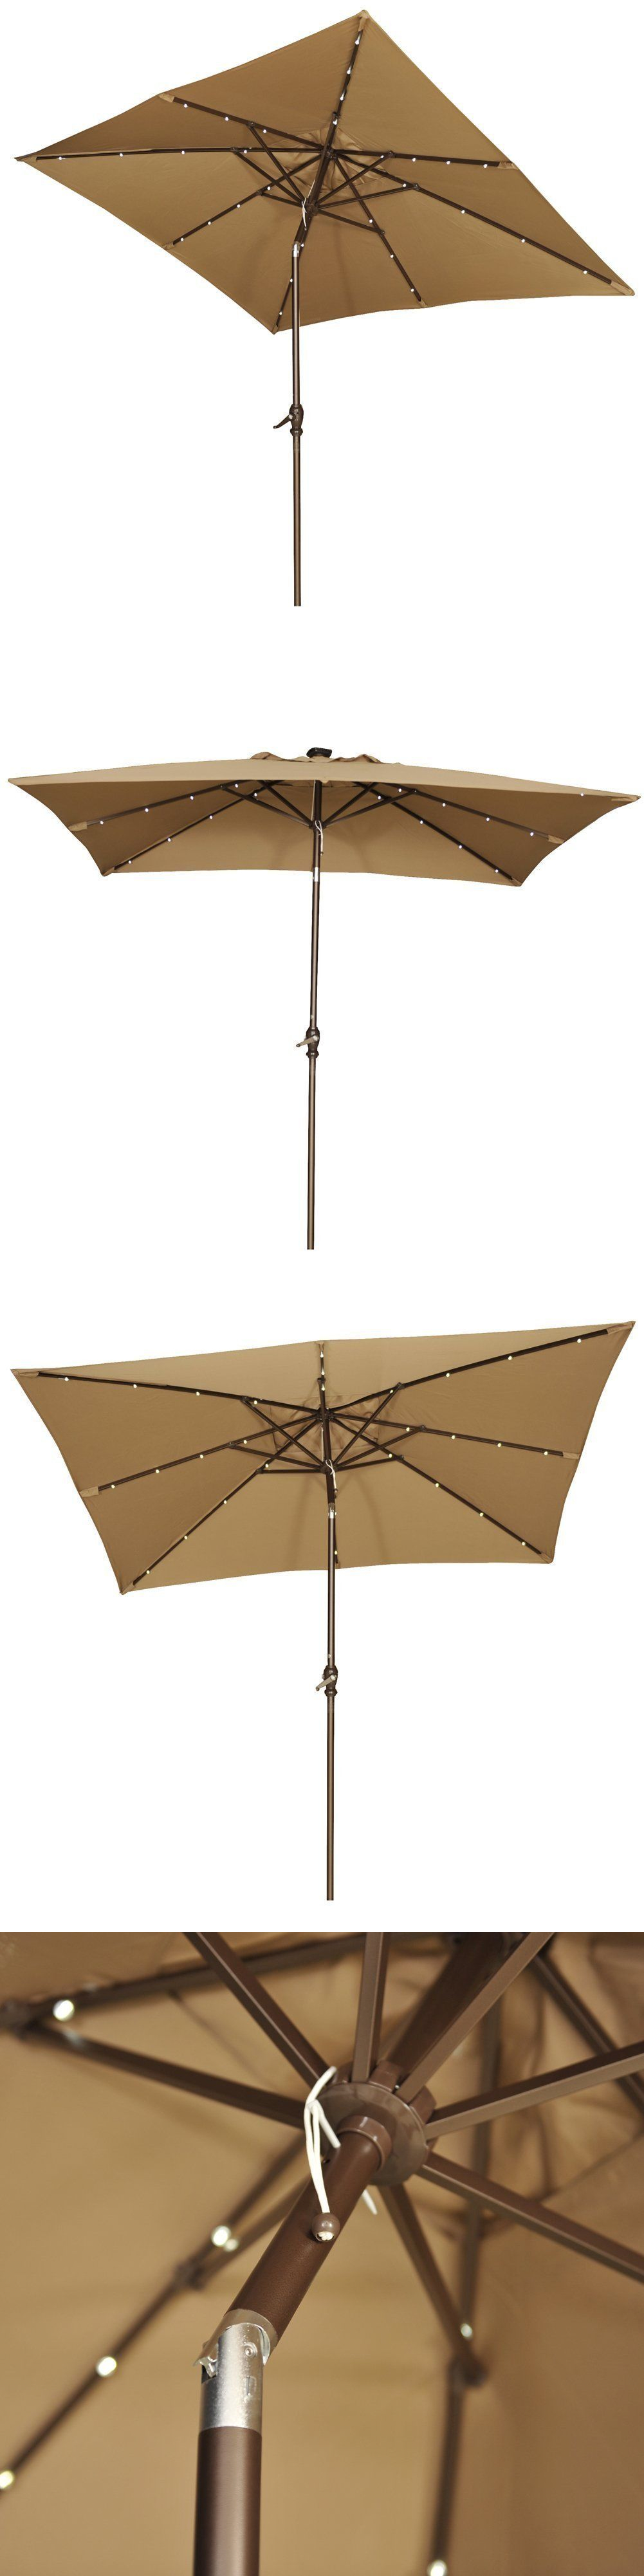 Rectangular Patio Umbrella With Solar Lights Pleasing Umbrellas 180998 7X9 Ft Rectangular Patio Umbrella W Solar Powered Design Inspiration